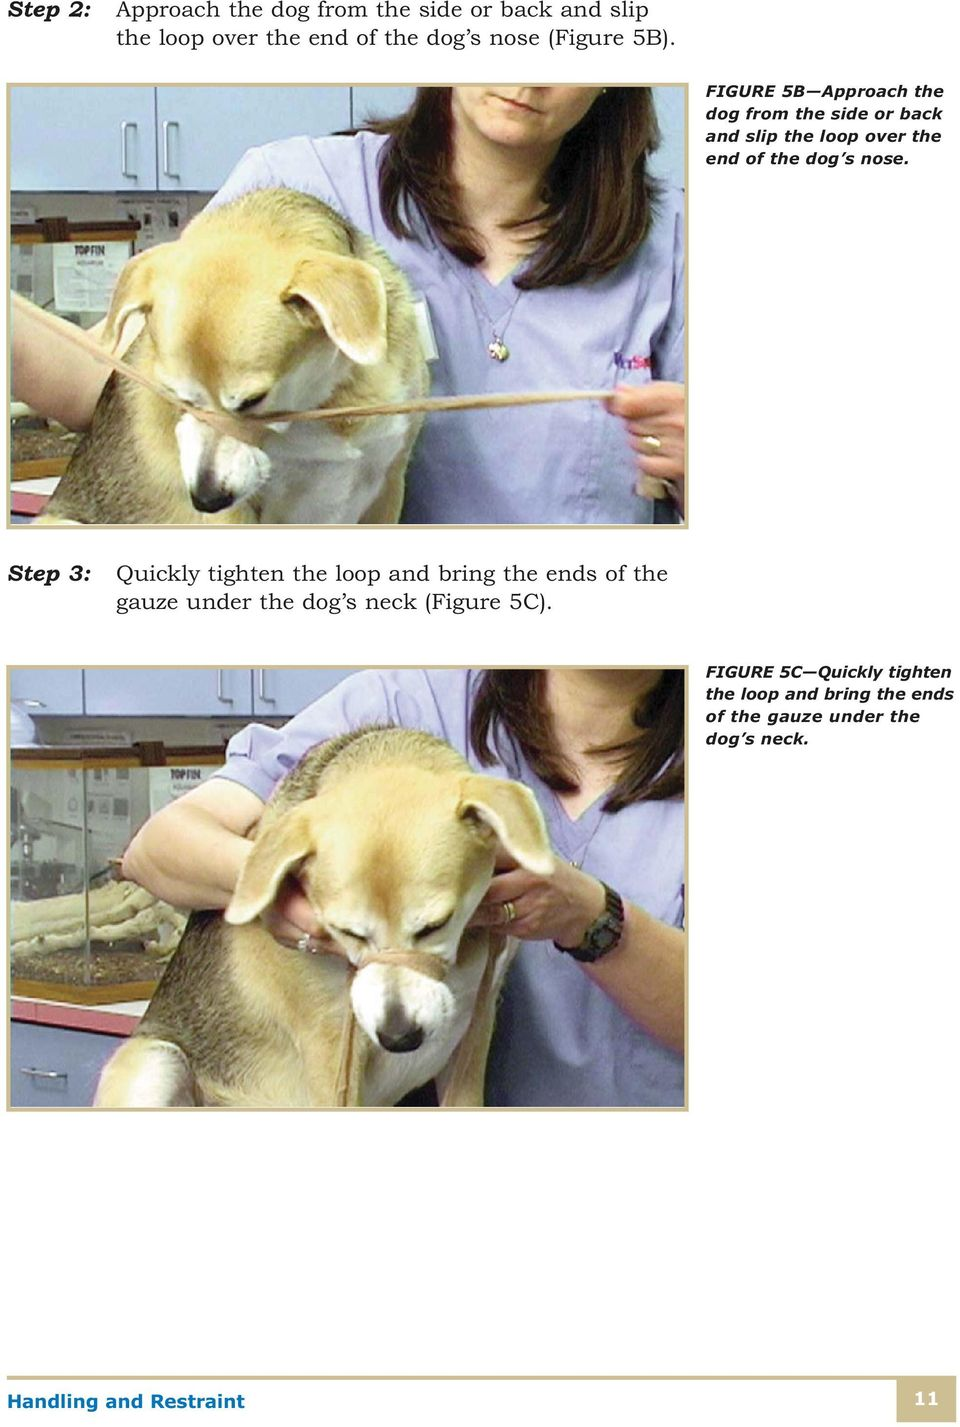 Step 3: Quickly tighten the loop and bring the ends of the gauze under the dog s neck (Figure 5C).